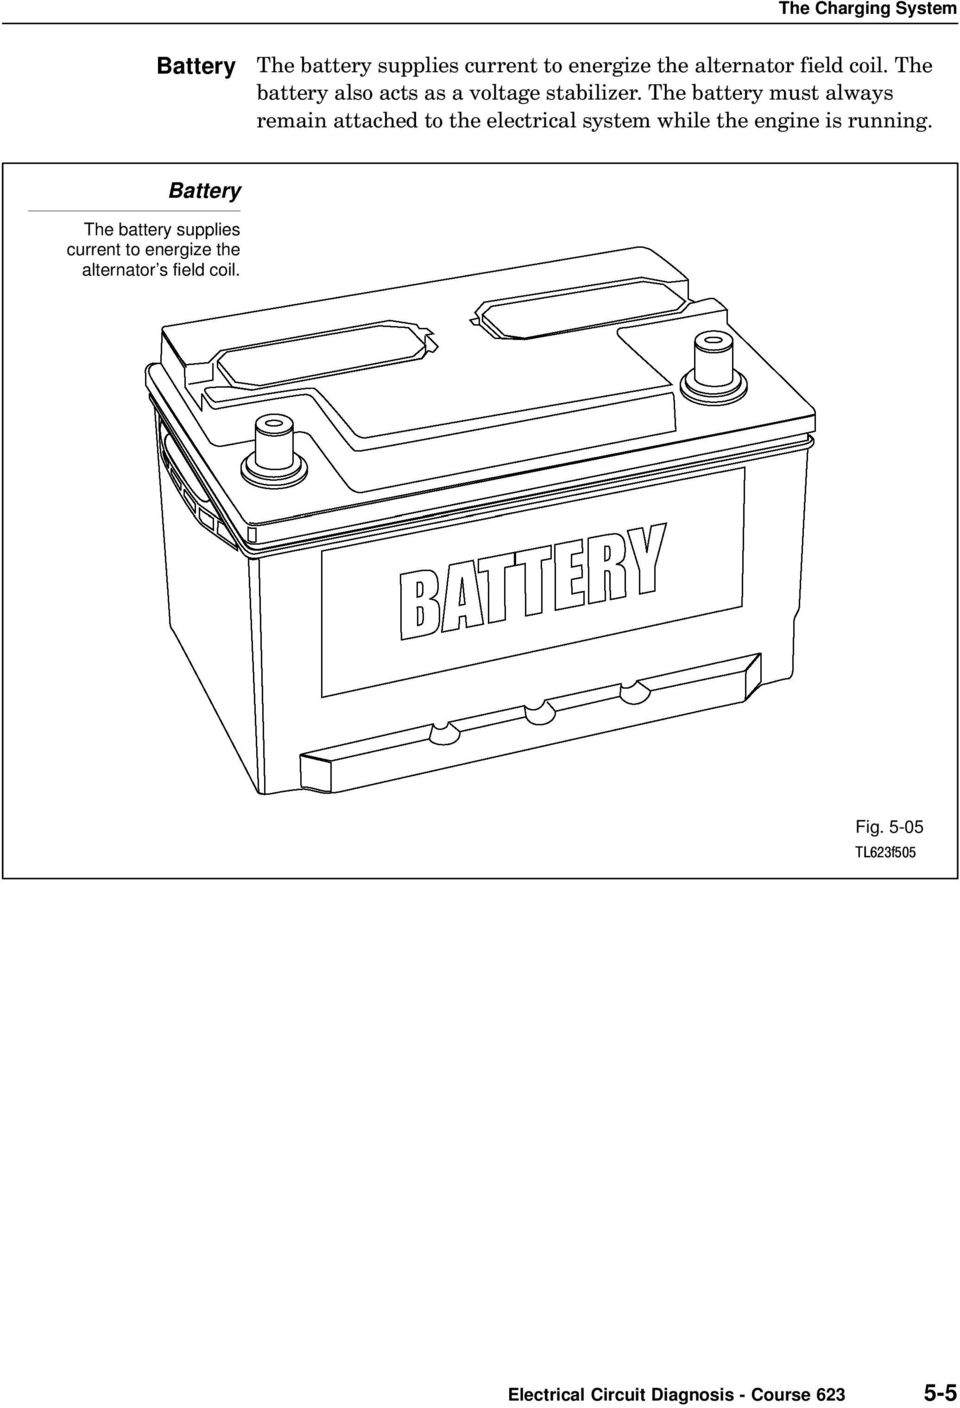 The battery must always remain attached to the electrical system while the engine is running.